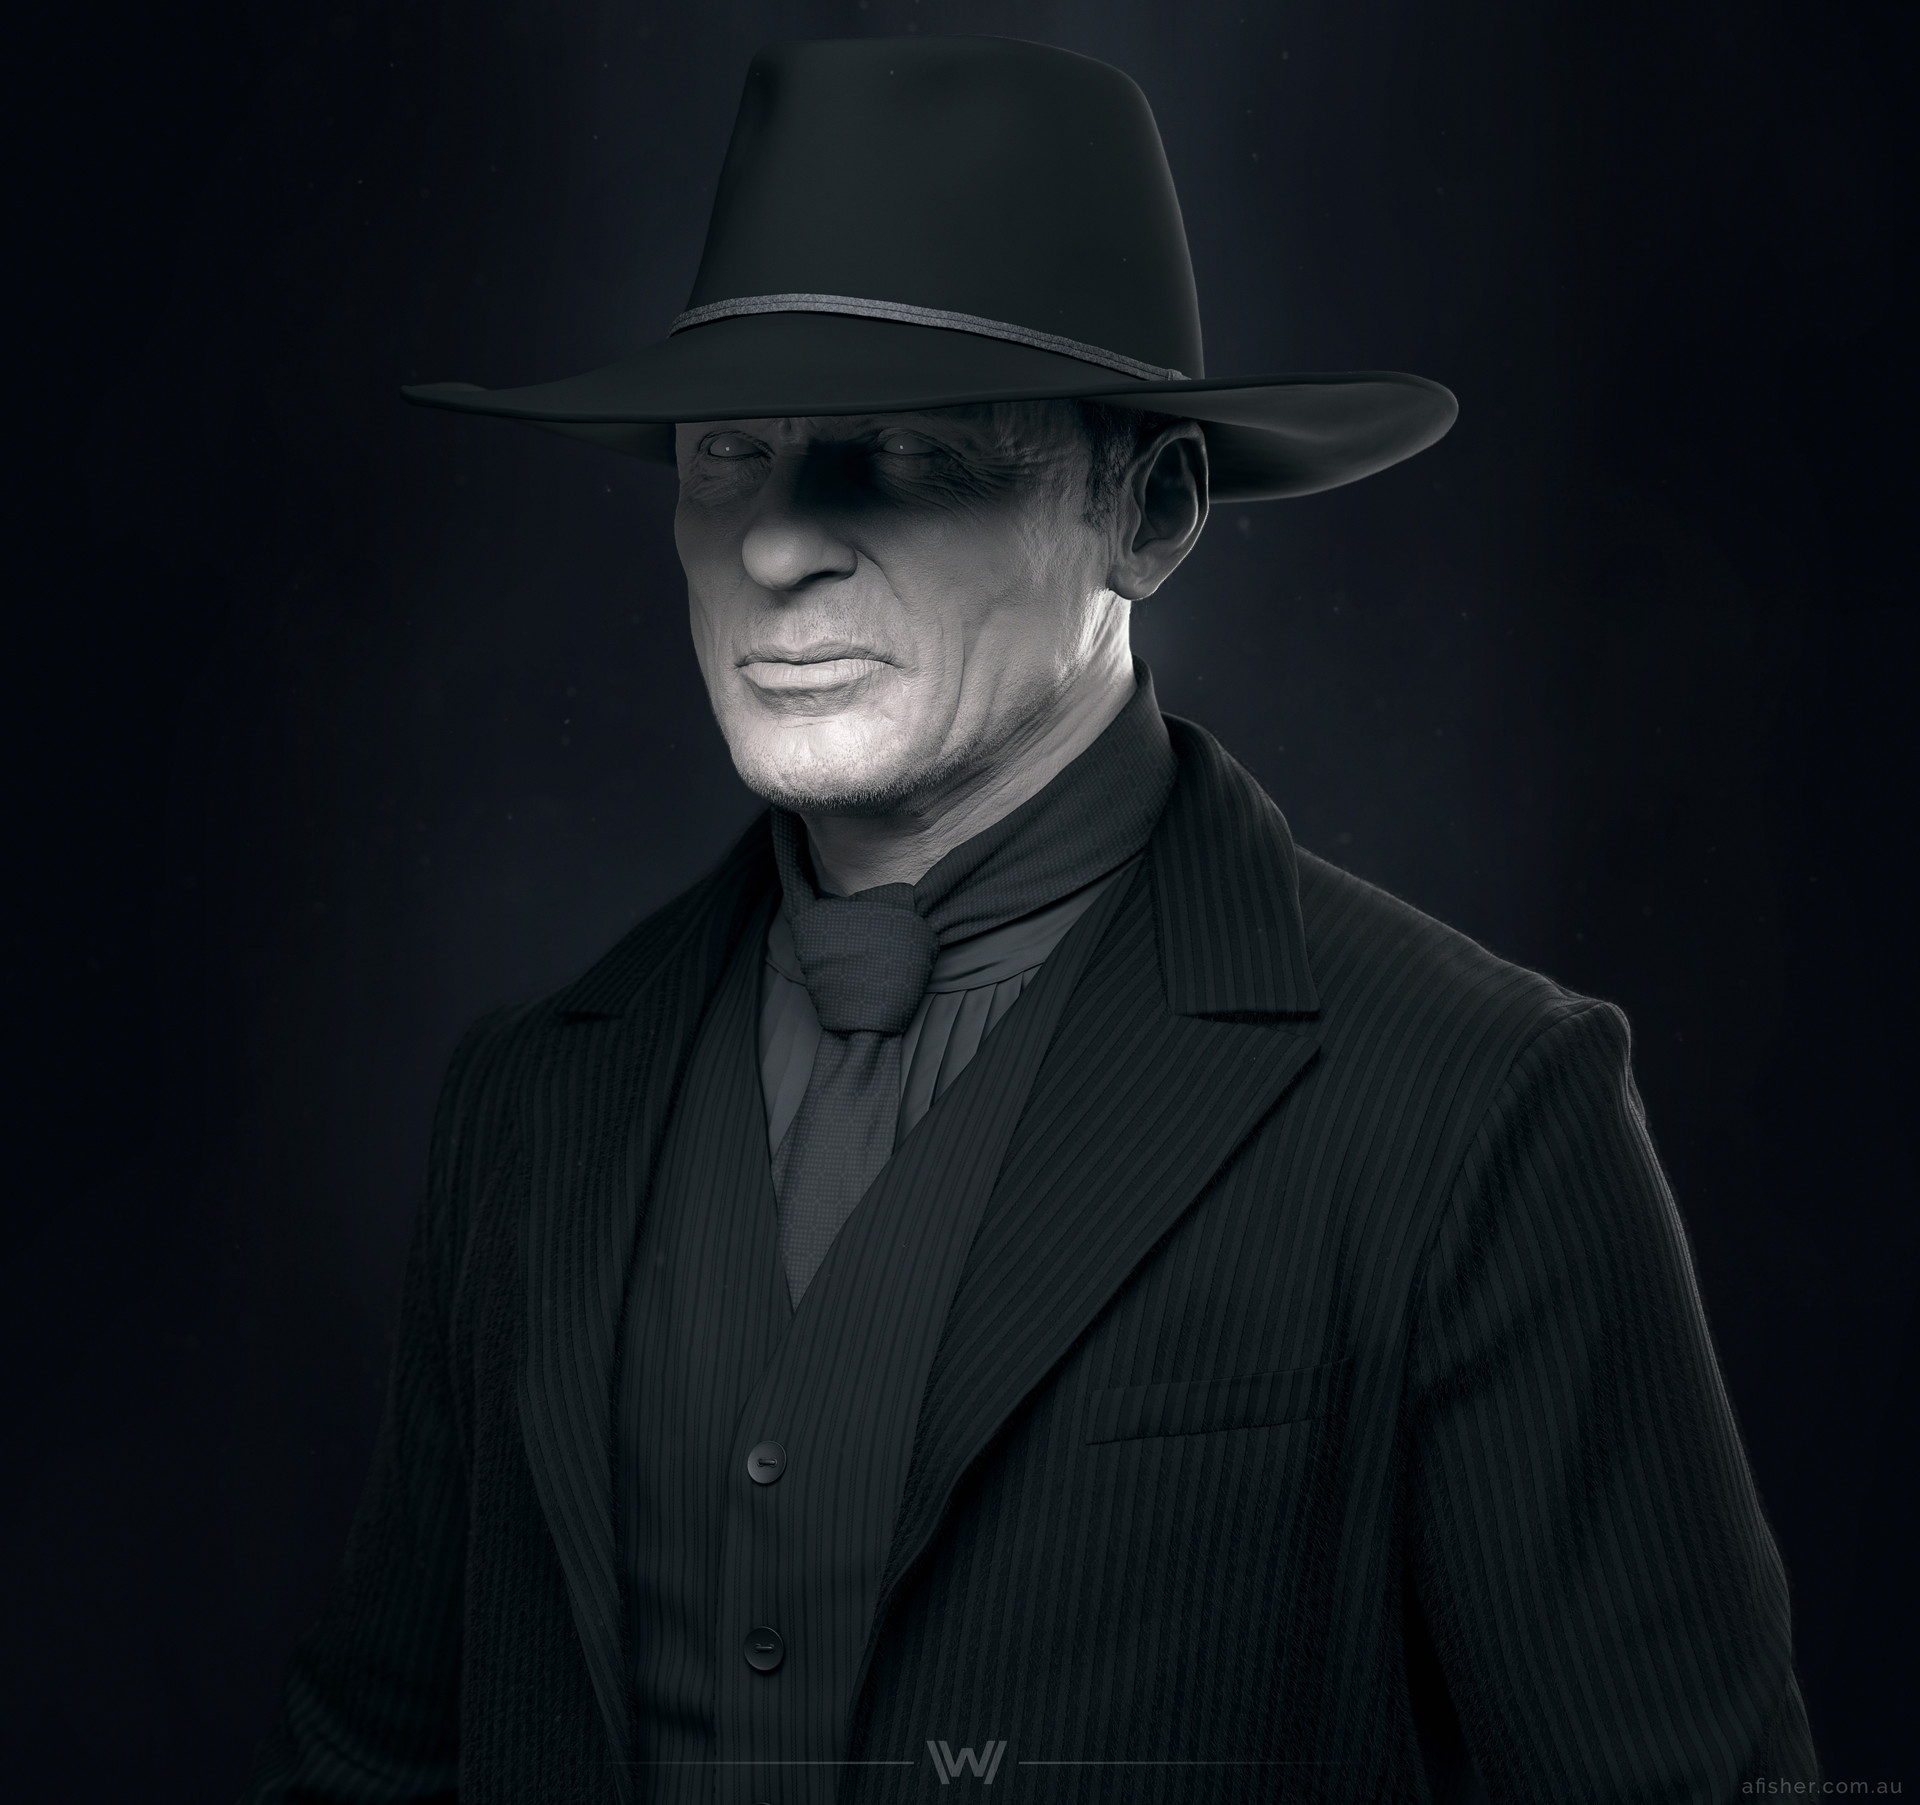 artstation - the man in black, adam fisher